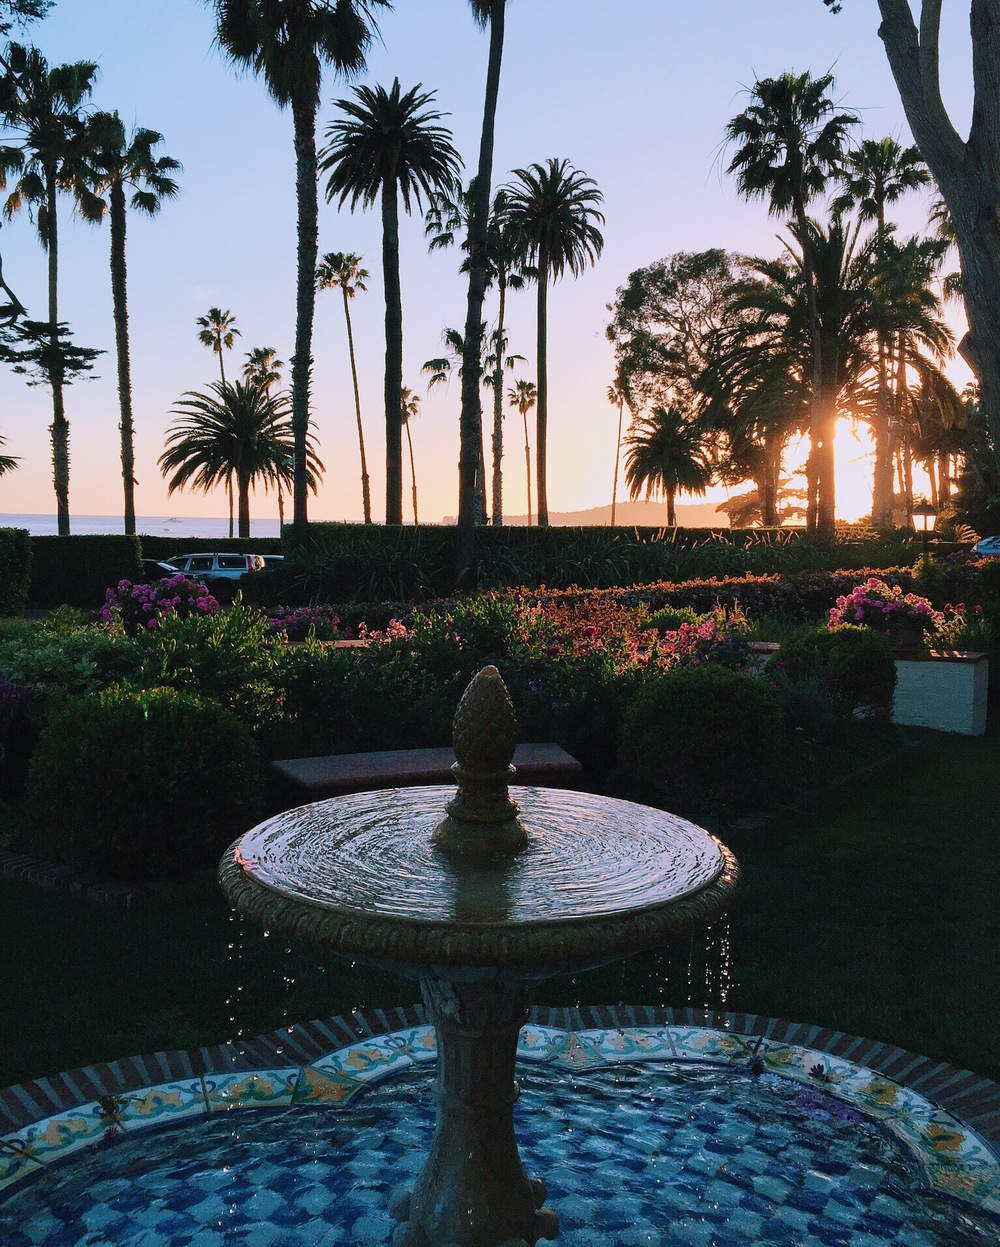 Four Seasons Resort The Biltmore Santa Barbara Fountain